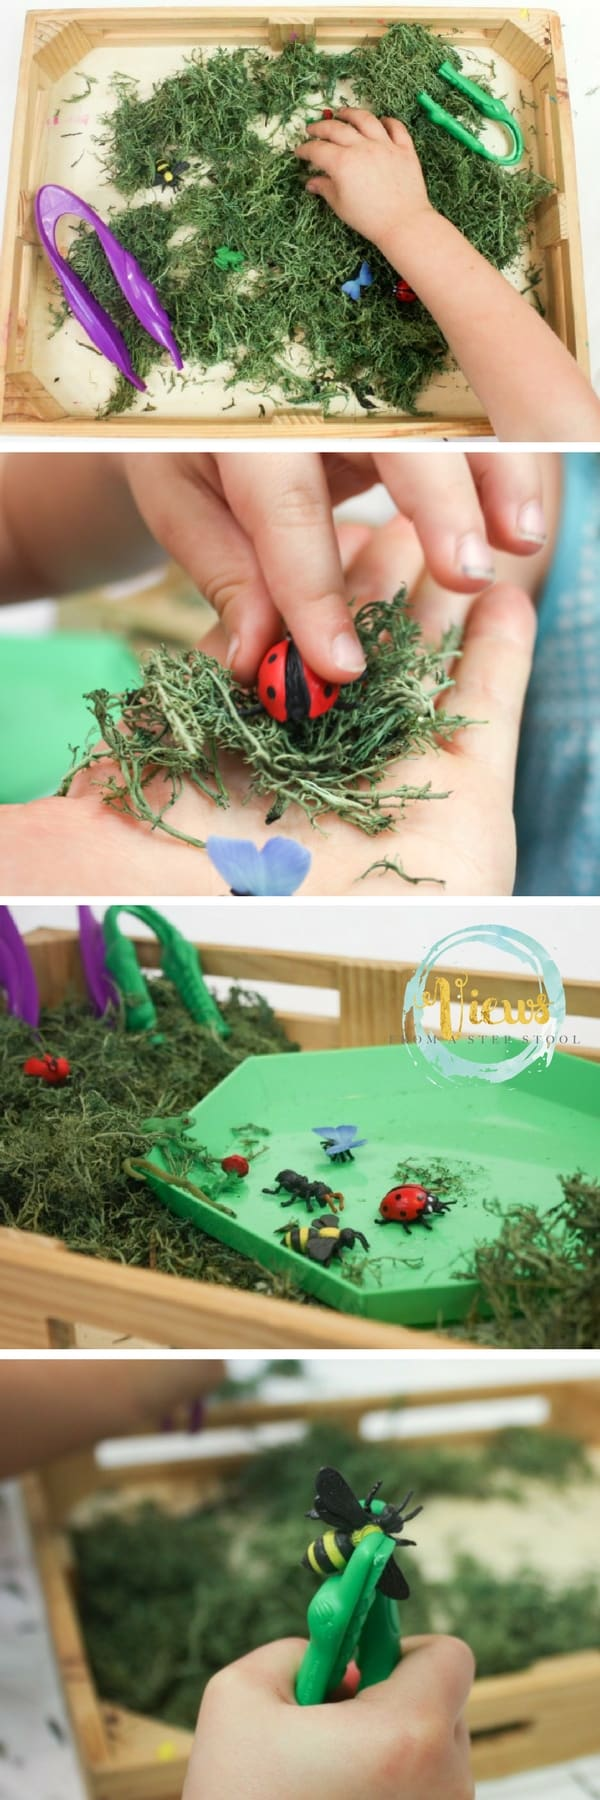 This bug activity for preschoolers is perfect for fine motor skills. Little learners will enjoy hunting for and finding bugs, and perfecting their skills!